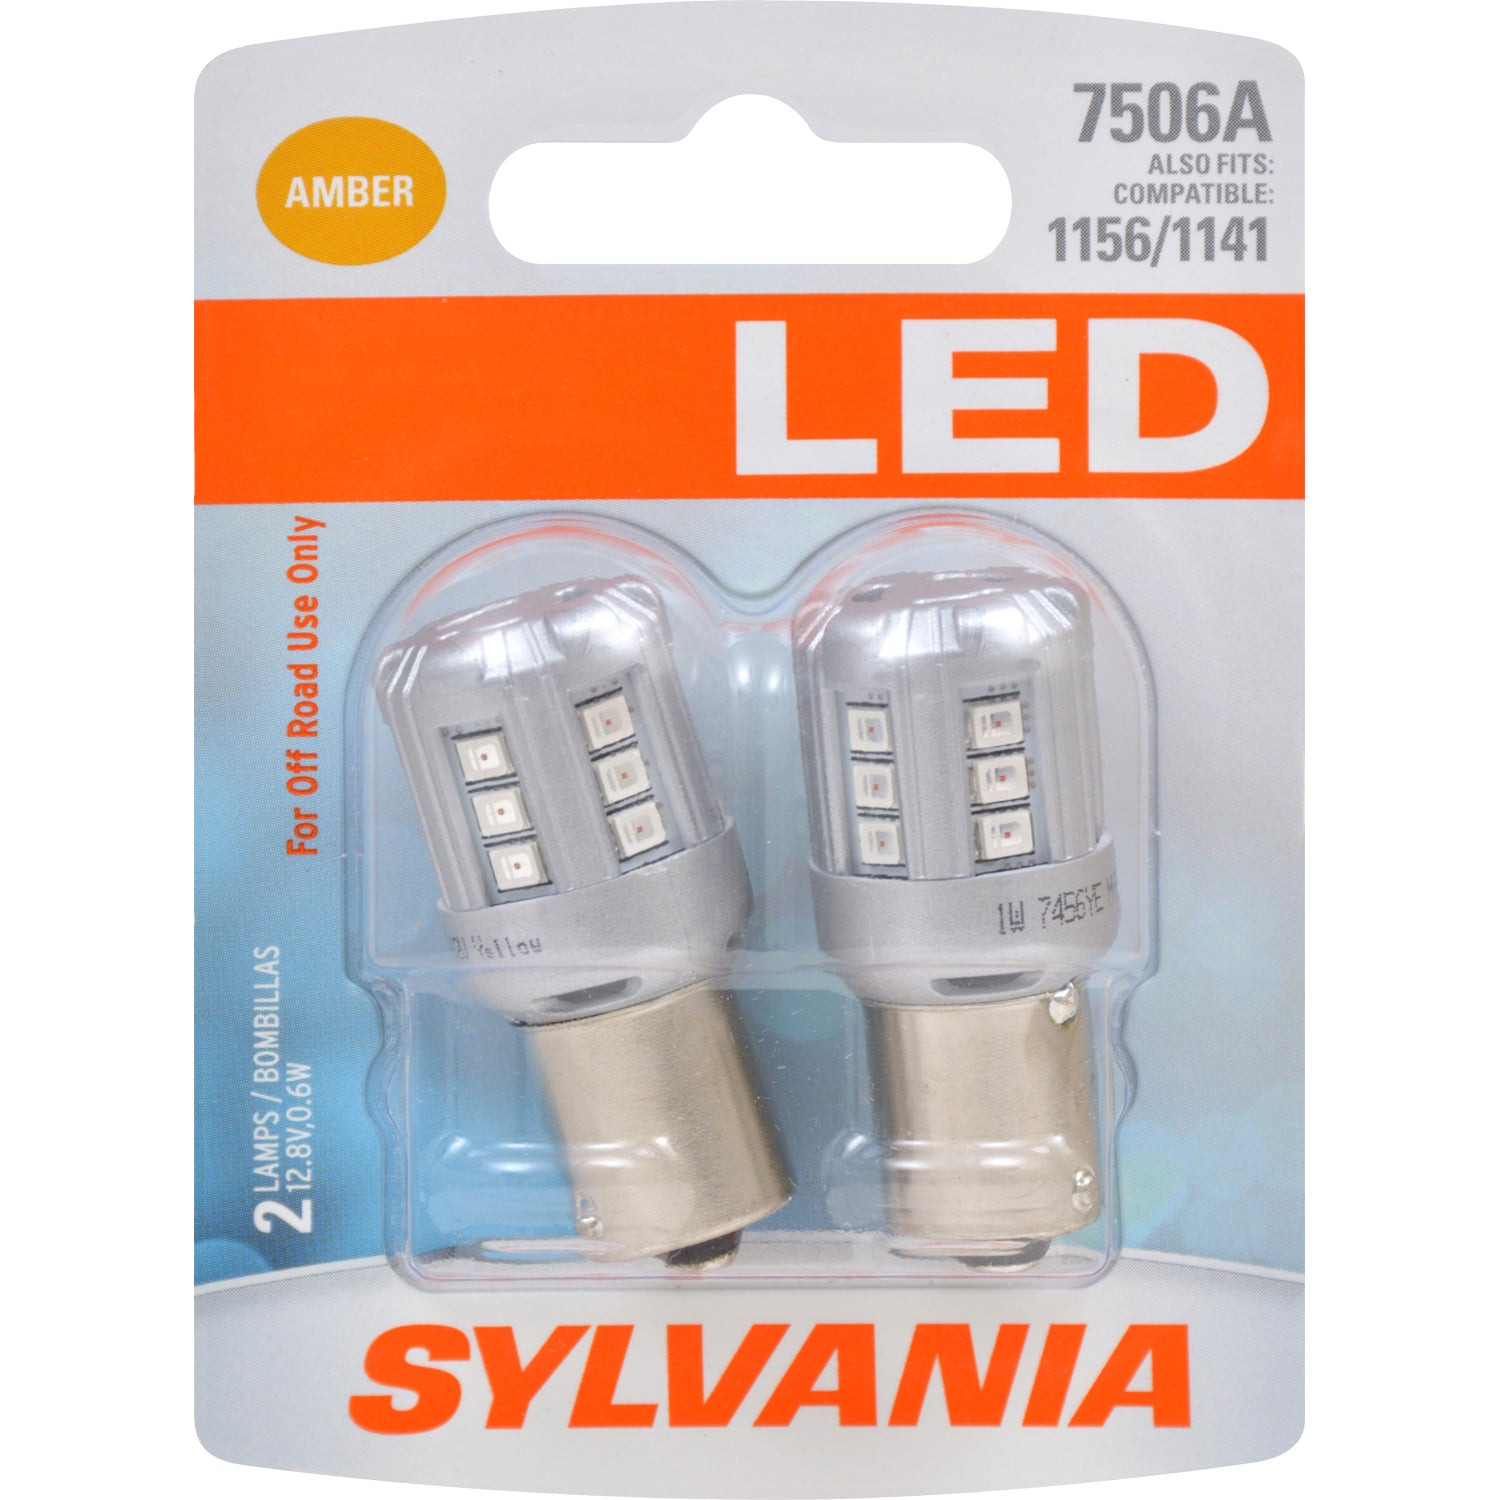 2-PK SYLVANIA 7506 Amber LED Automotive Bulb - fits 1156 and 1141